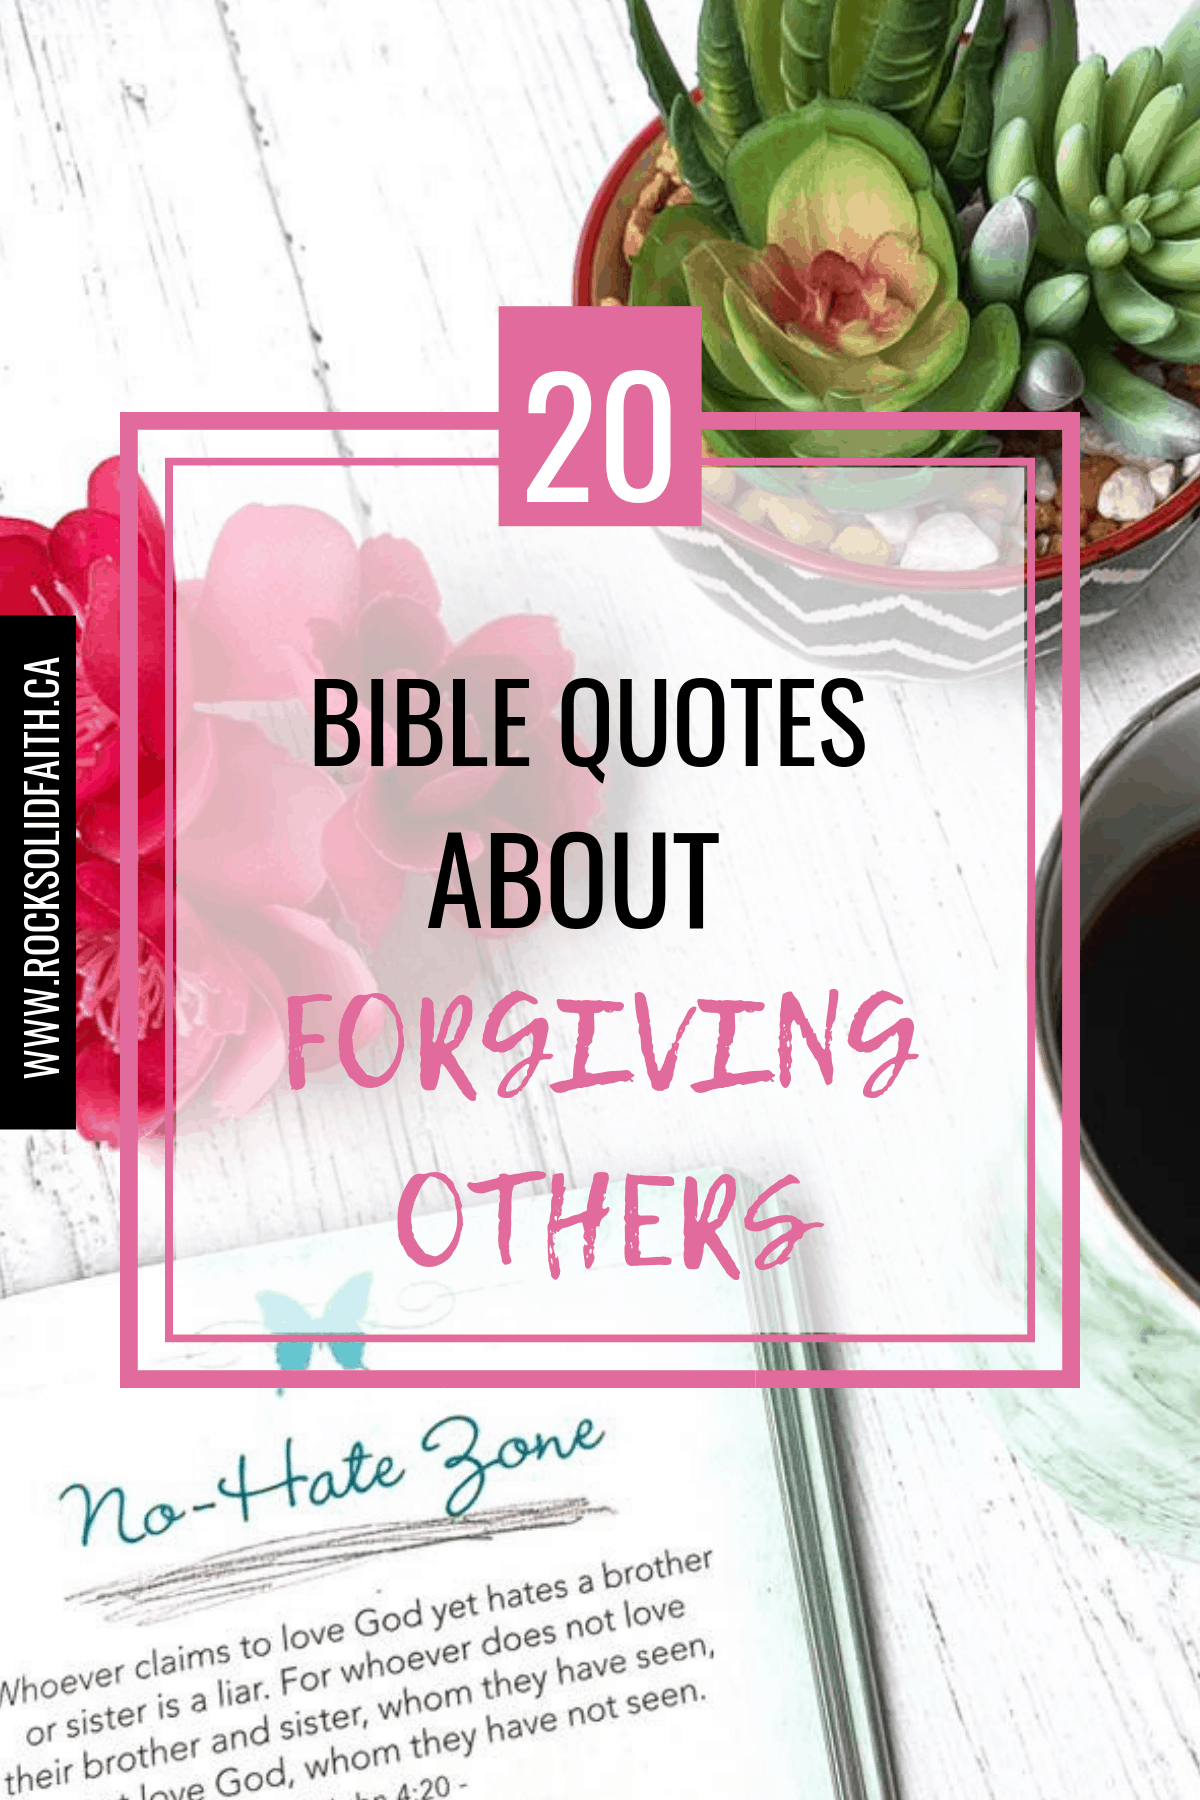 Bible verses about forgiveness and healing